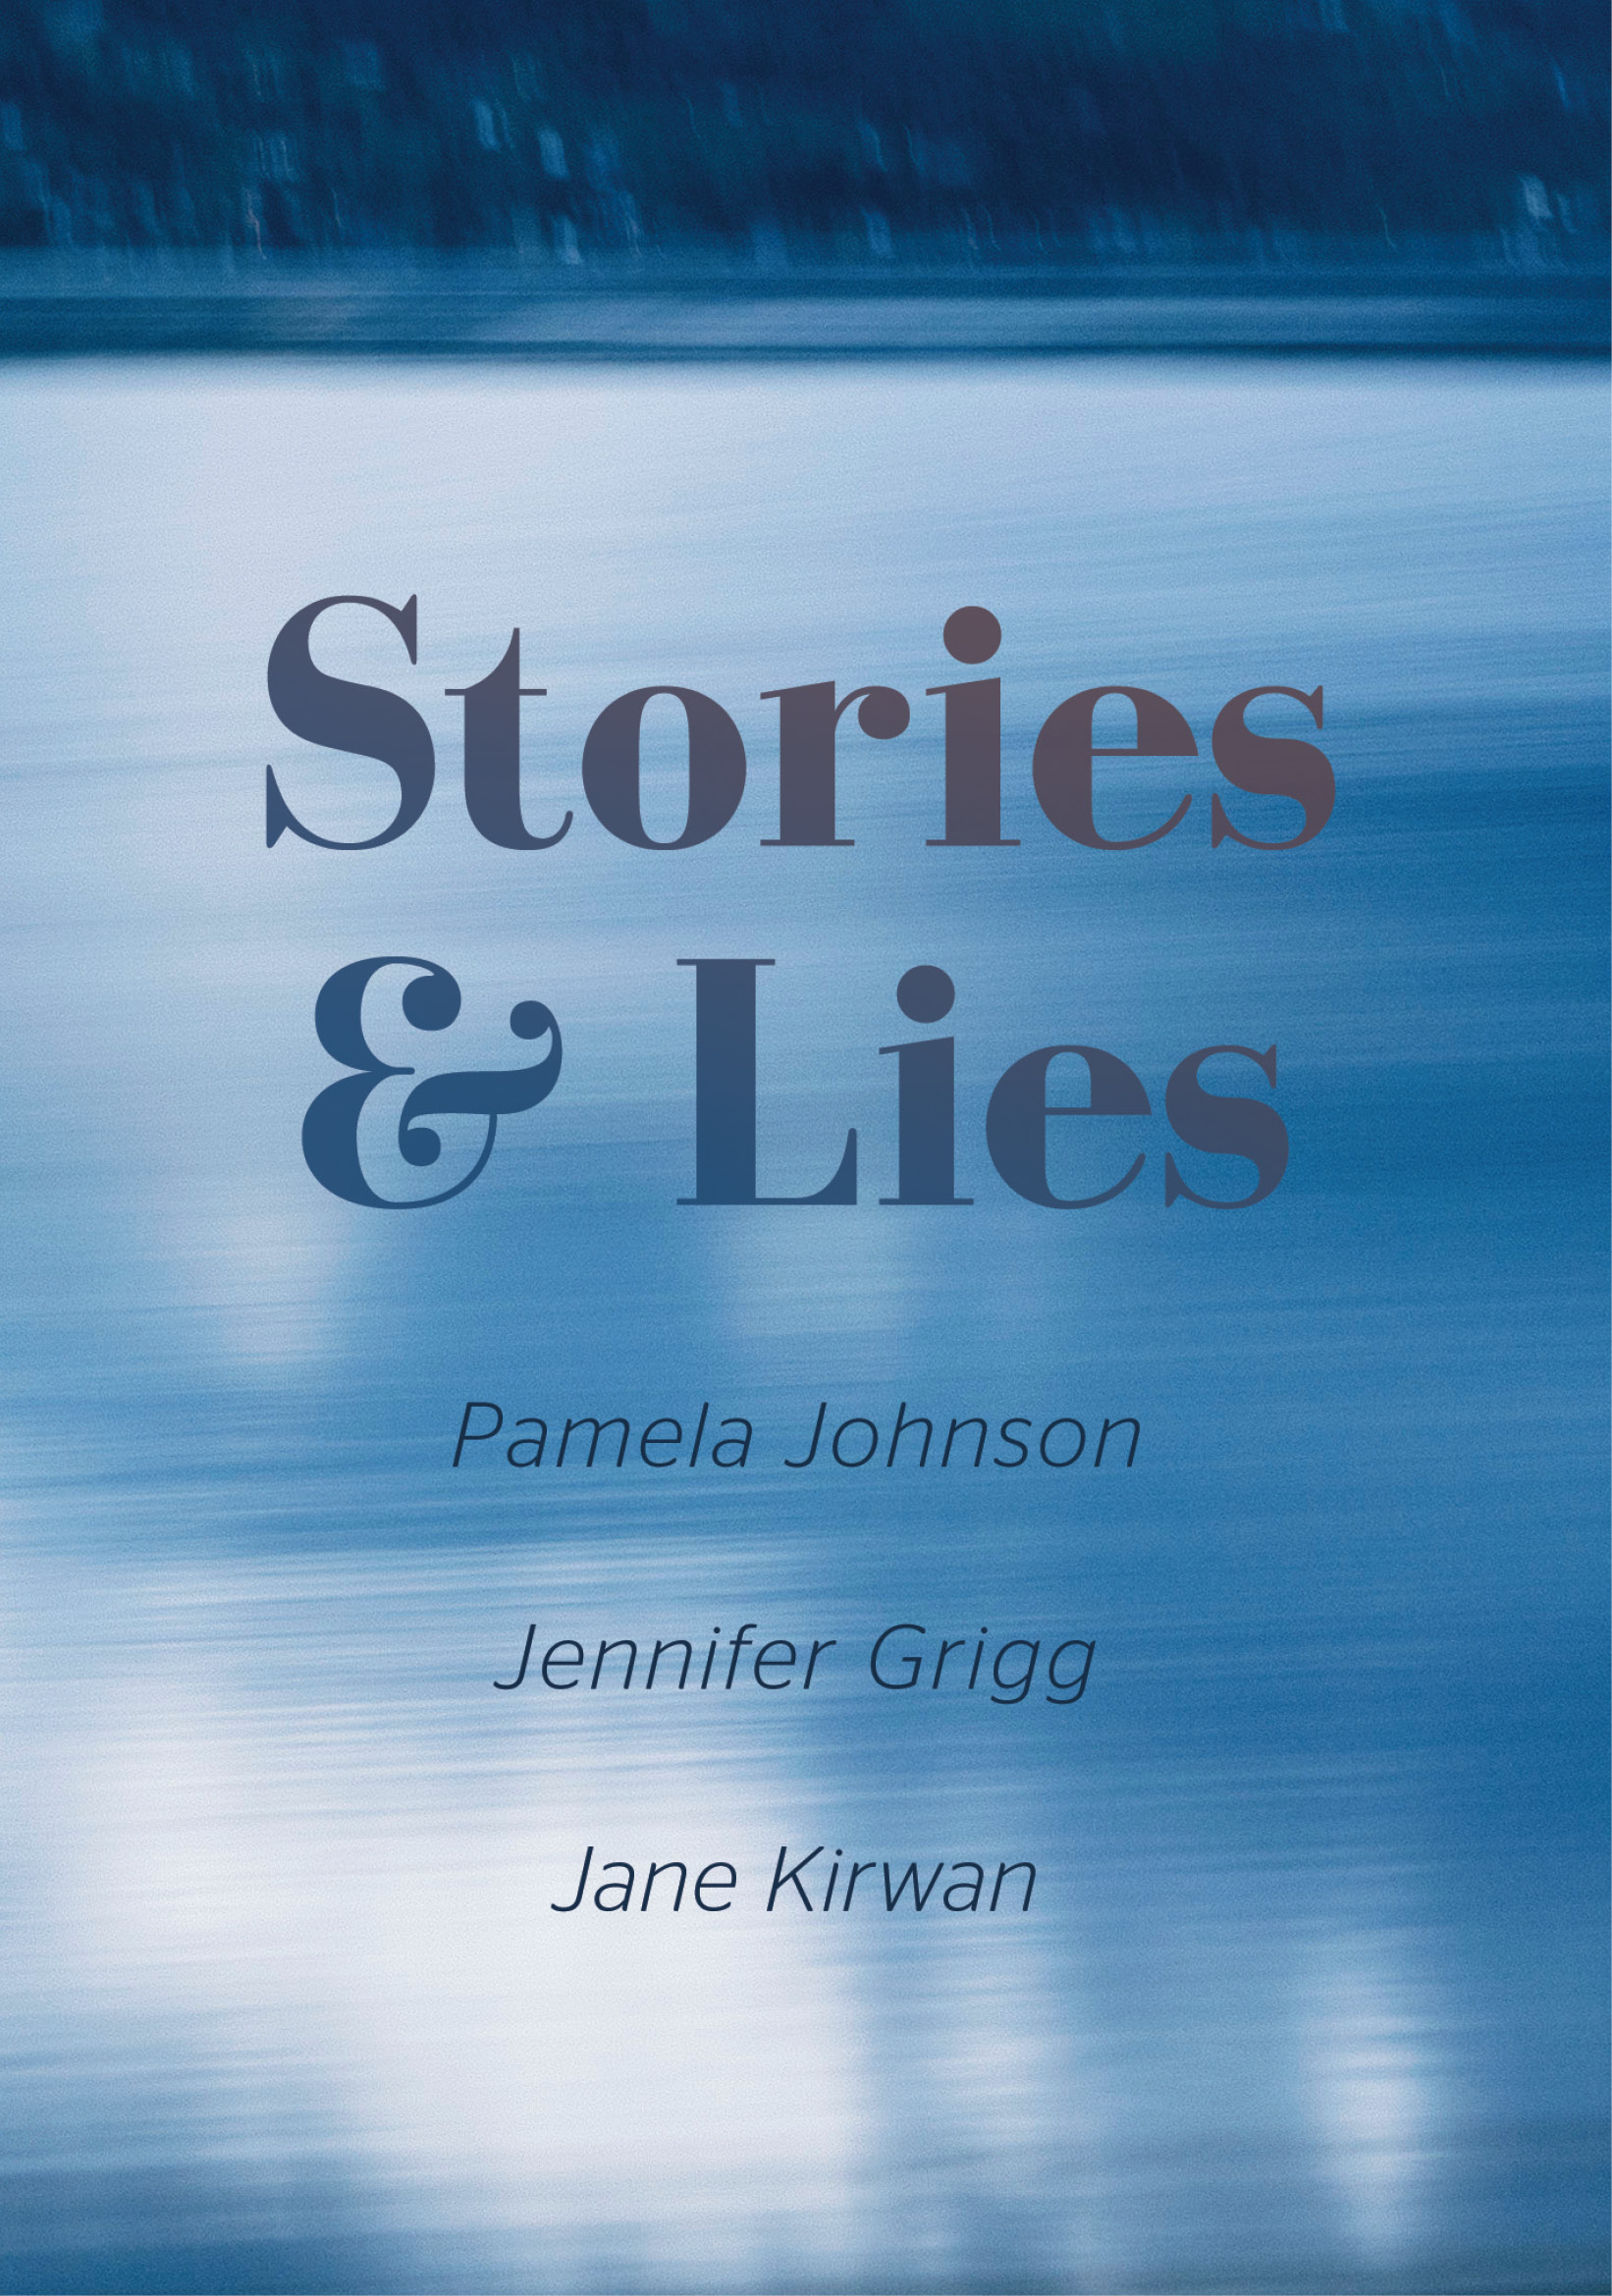 Stories Frontonly